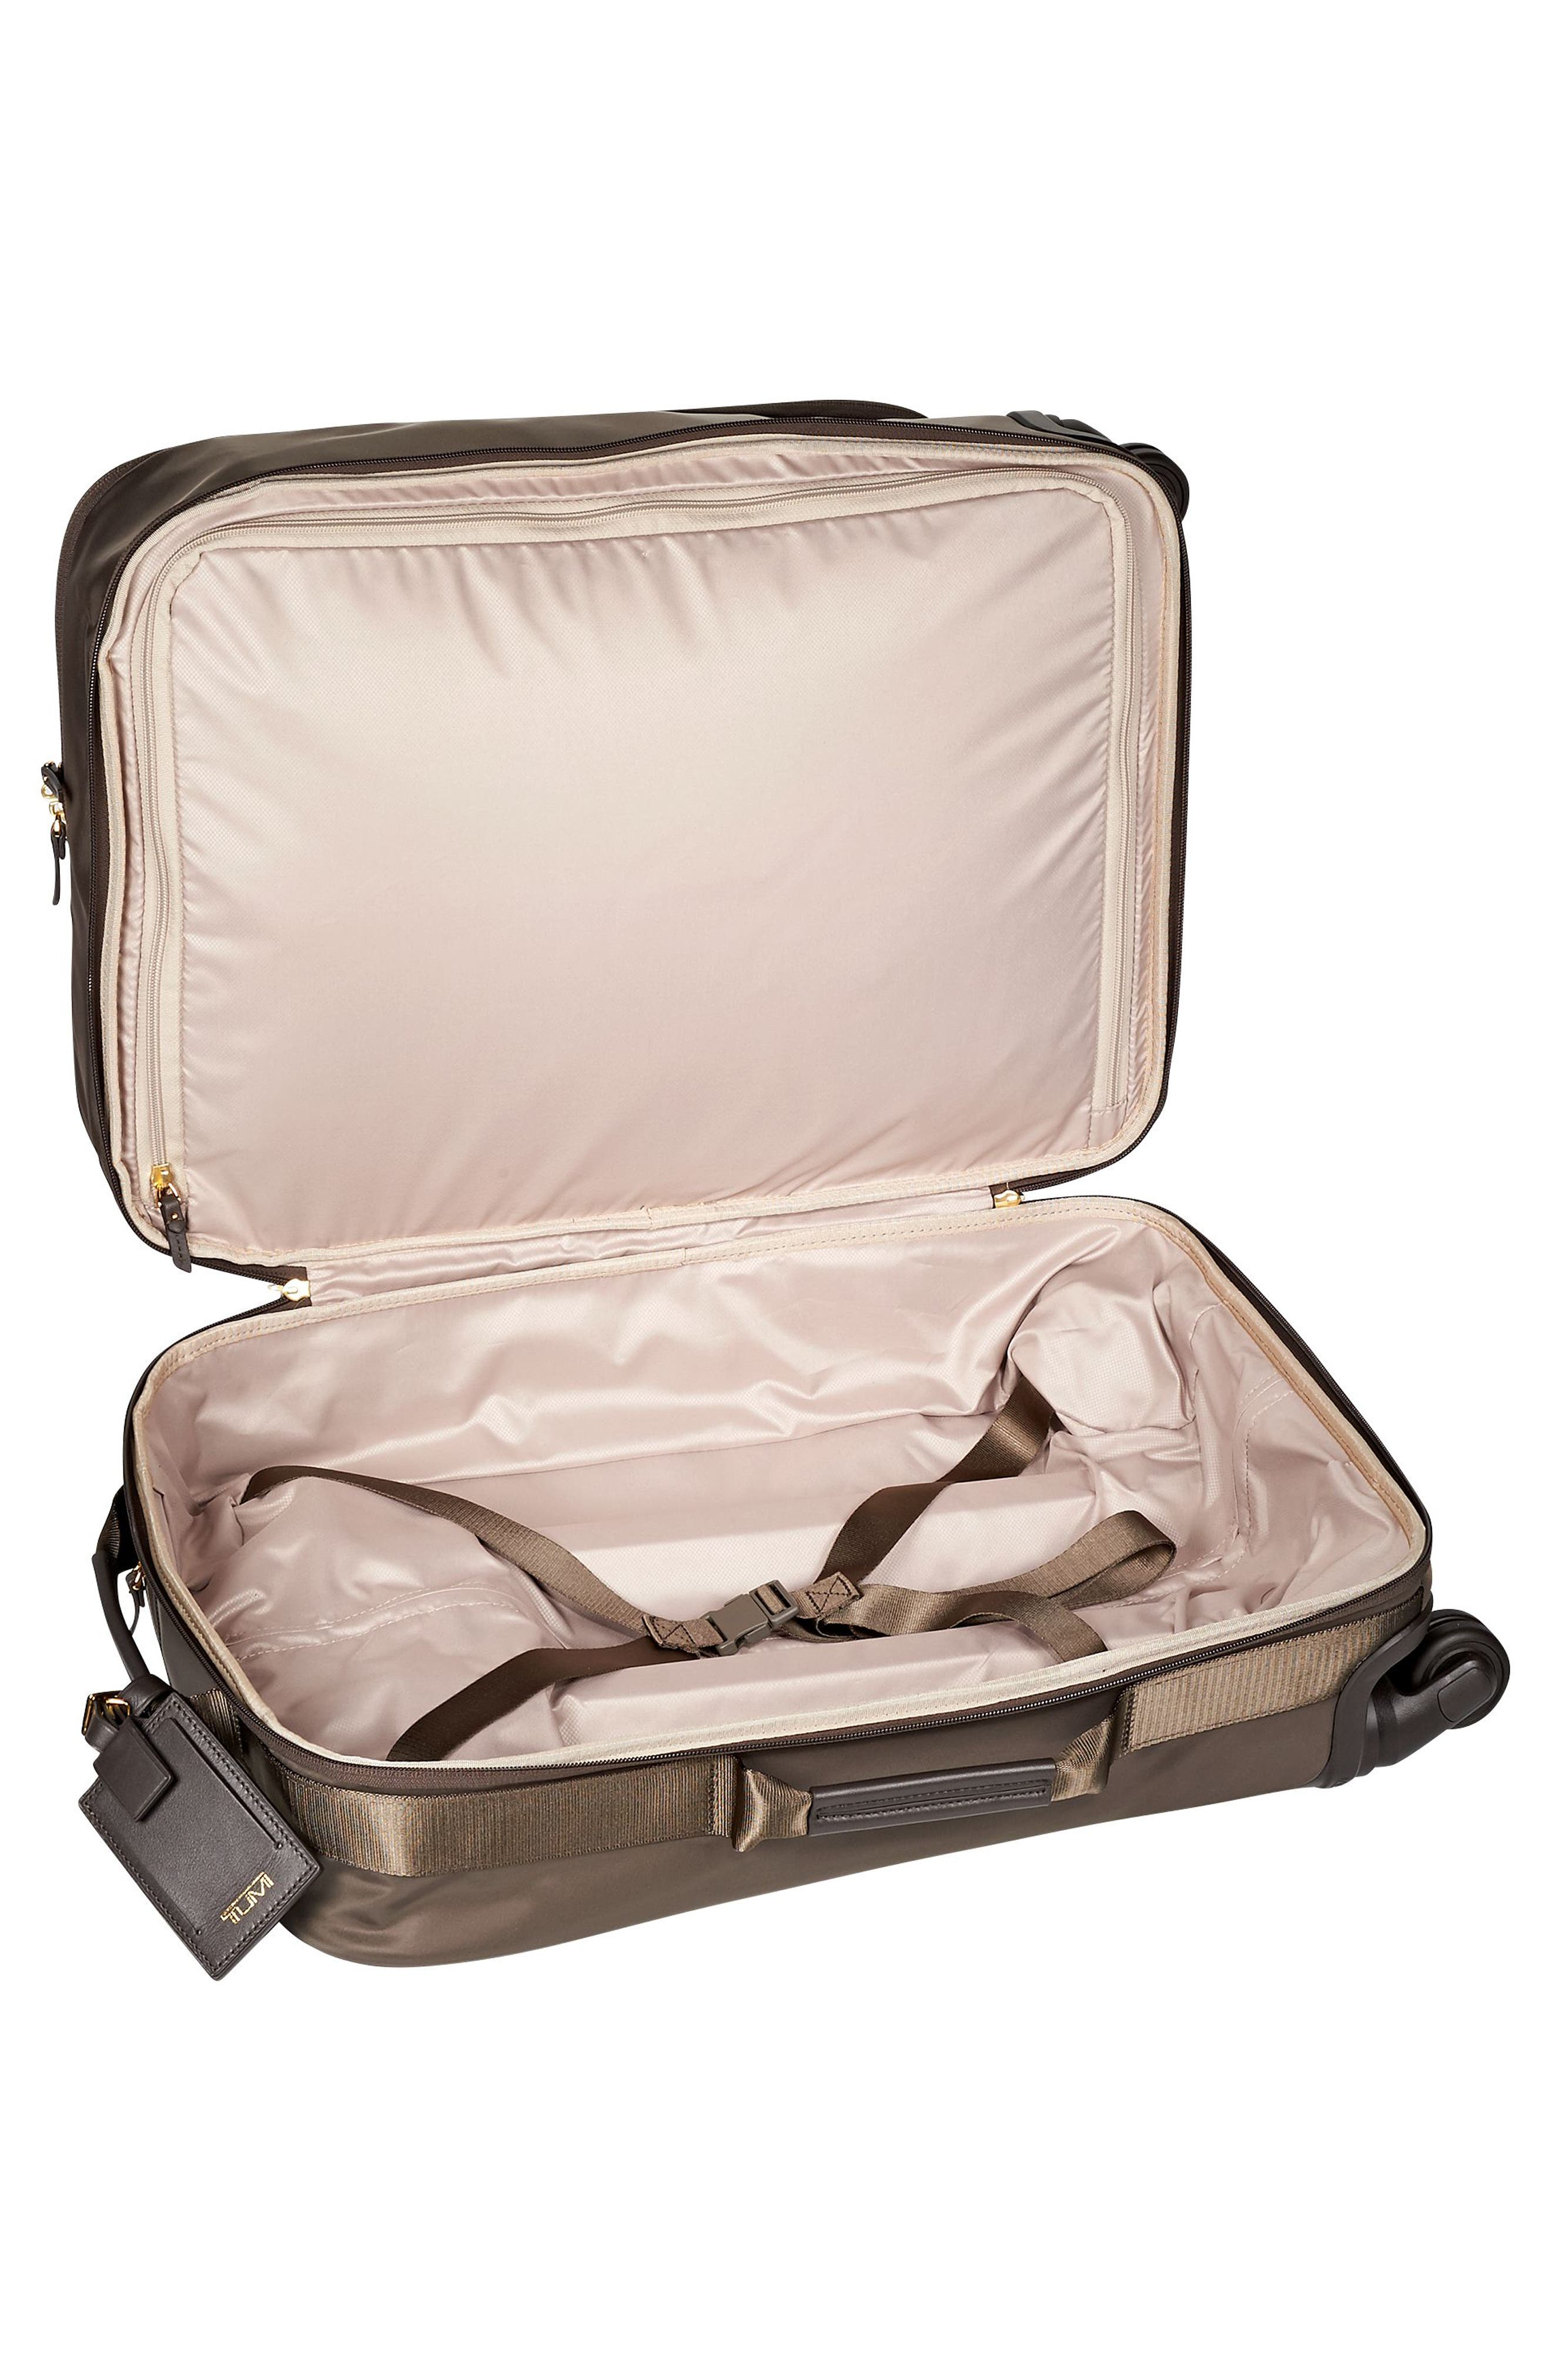 Super Leger 21-Inch Nylon Carry-On,                         Main,                         color, 200